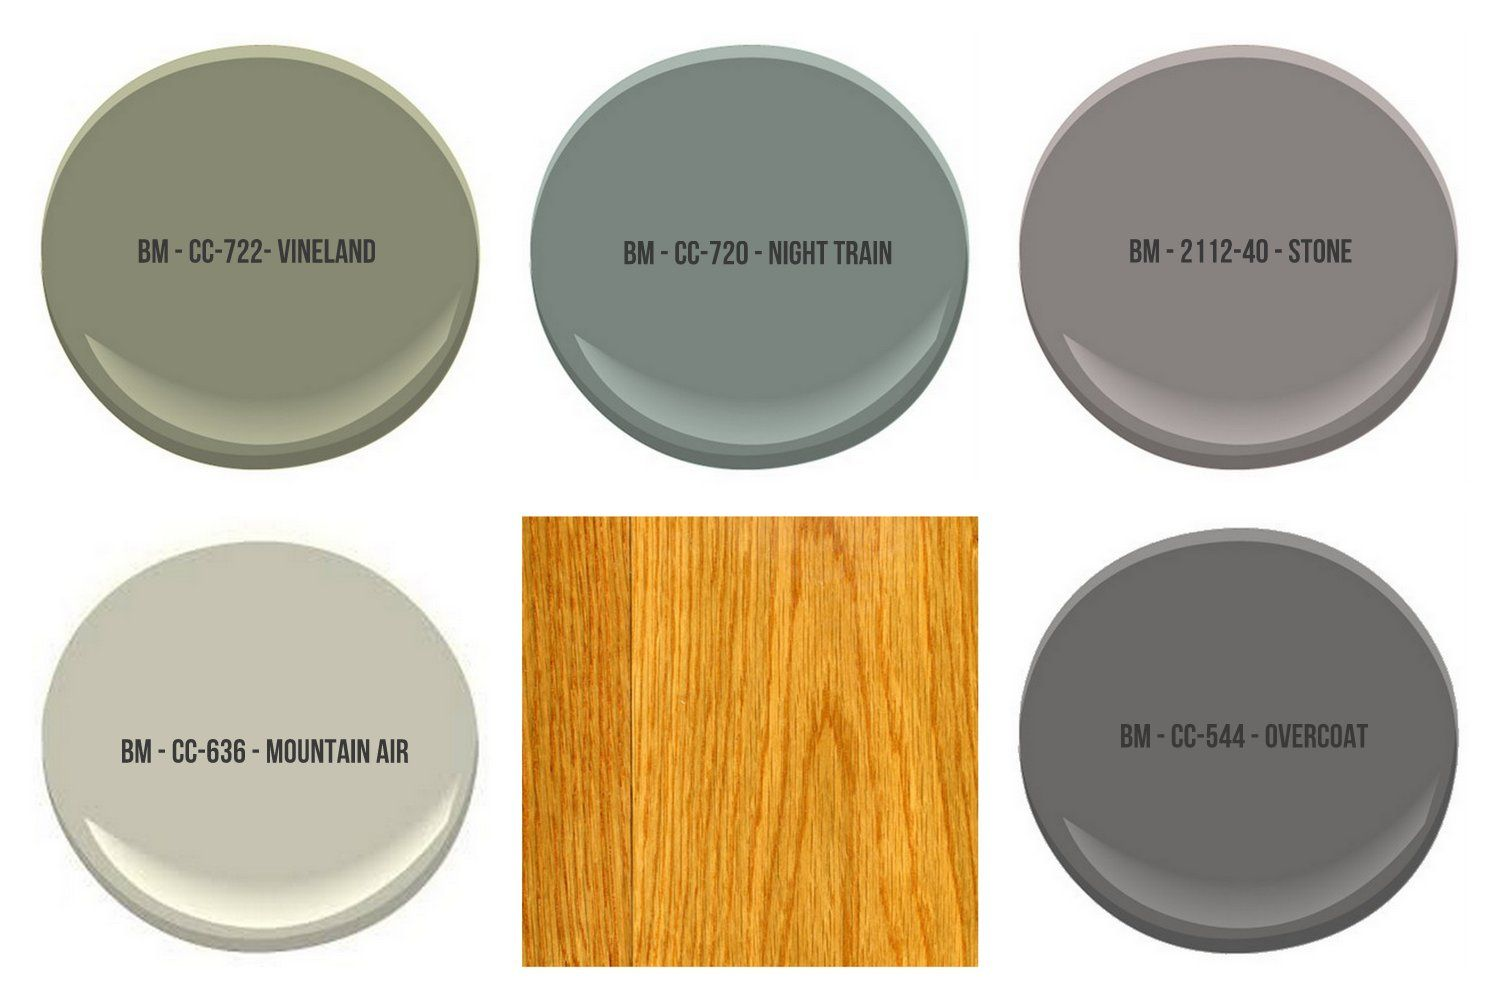 The Best Wall Paint Colors To Go With Honey Oak Kitchen Wall Colors Honey Oak Trim Best Wall Paint